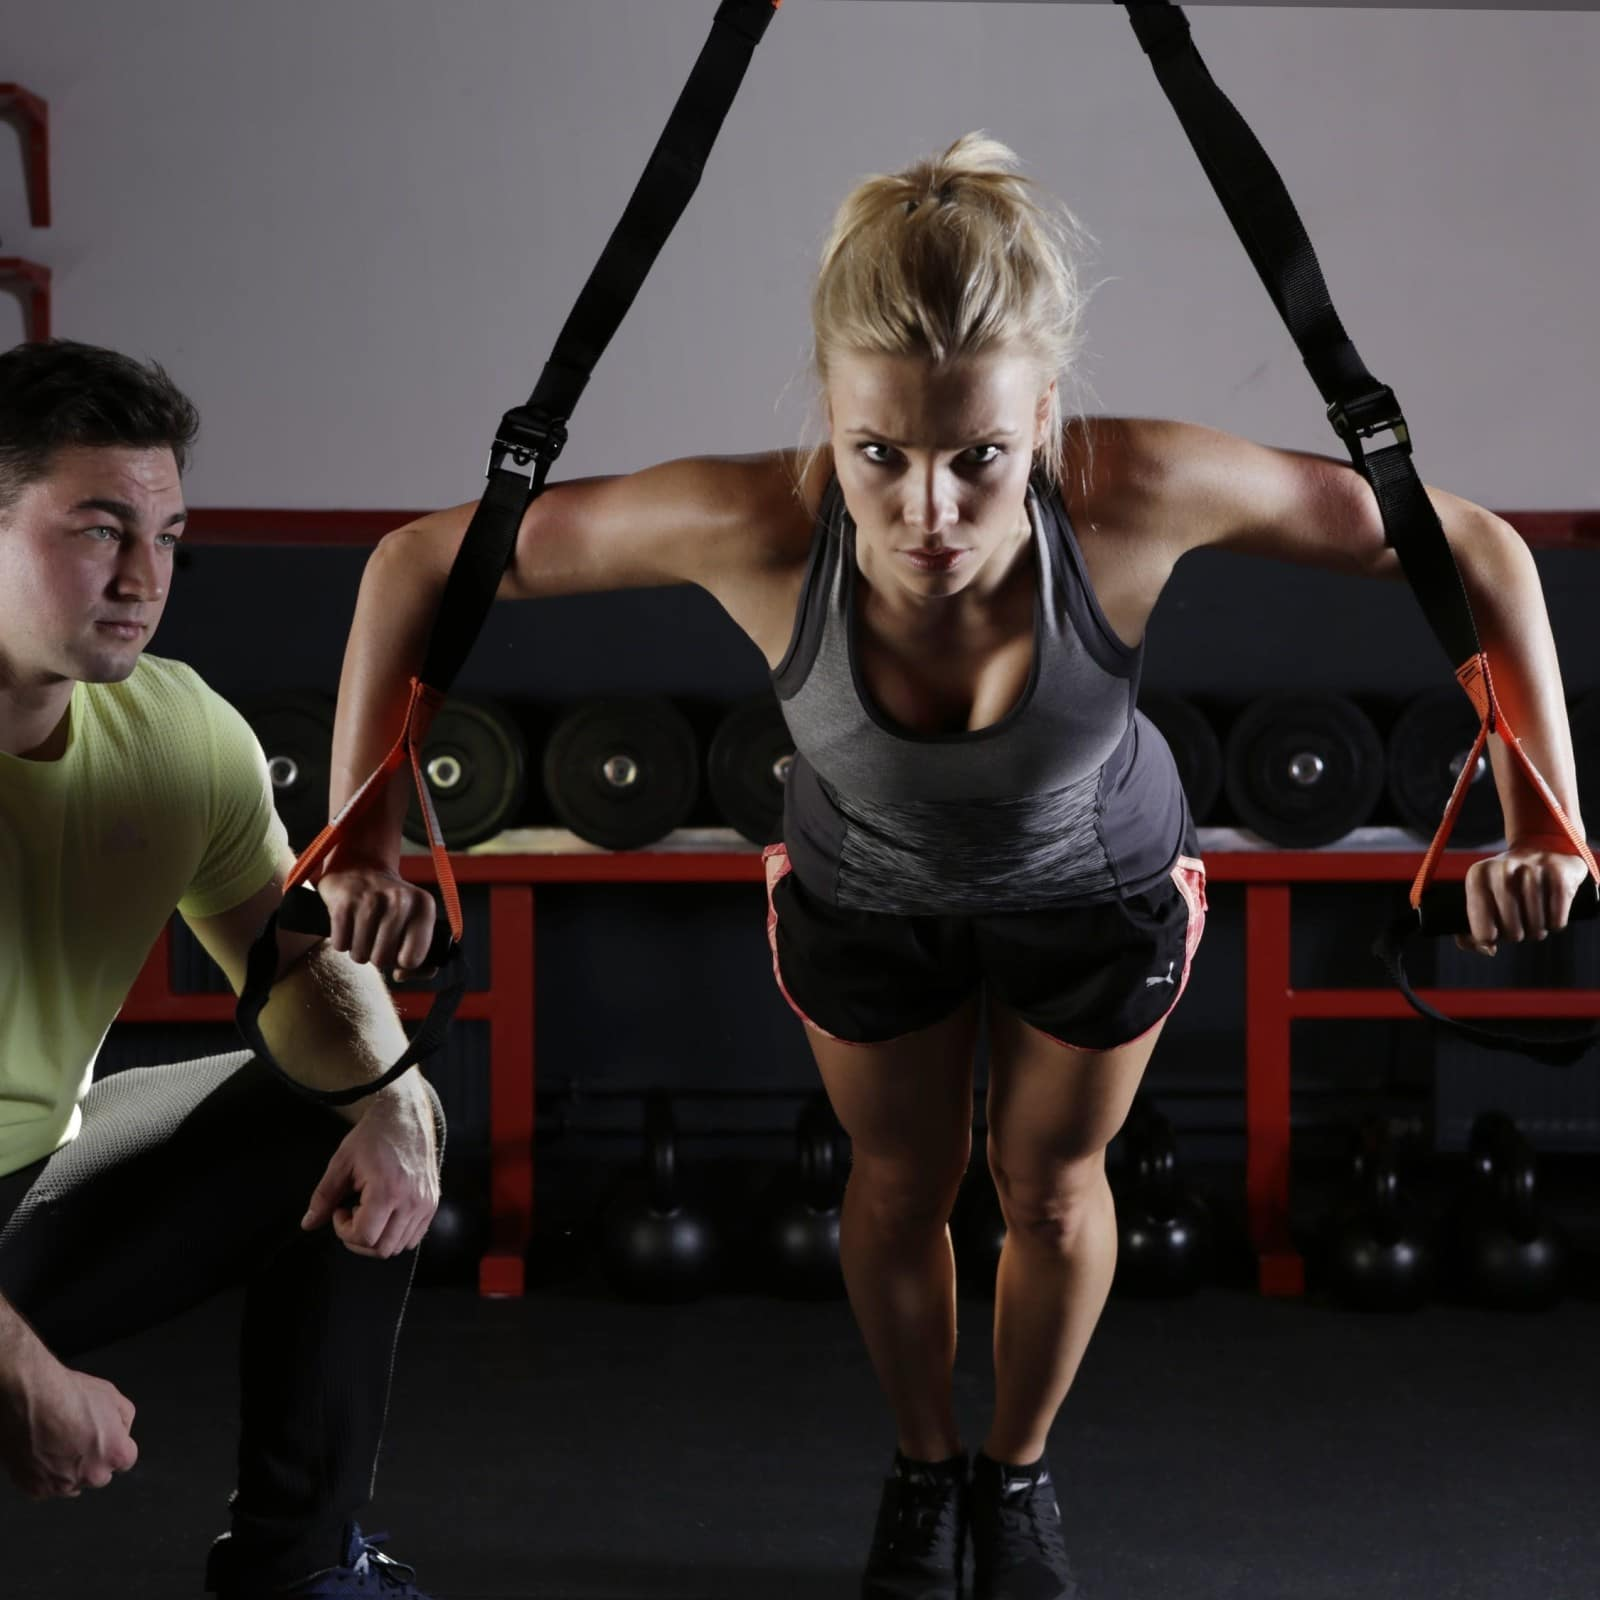 What are the benefits of strength-based training?